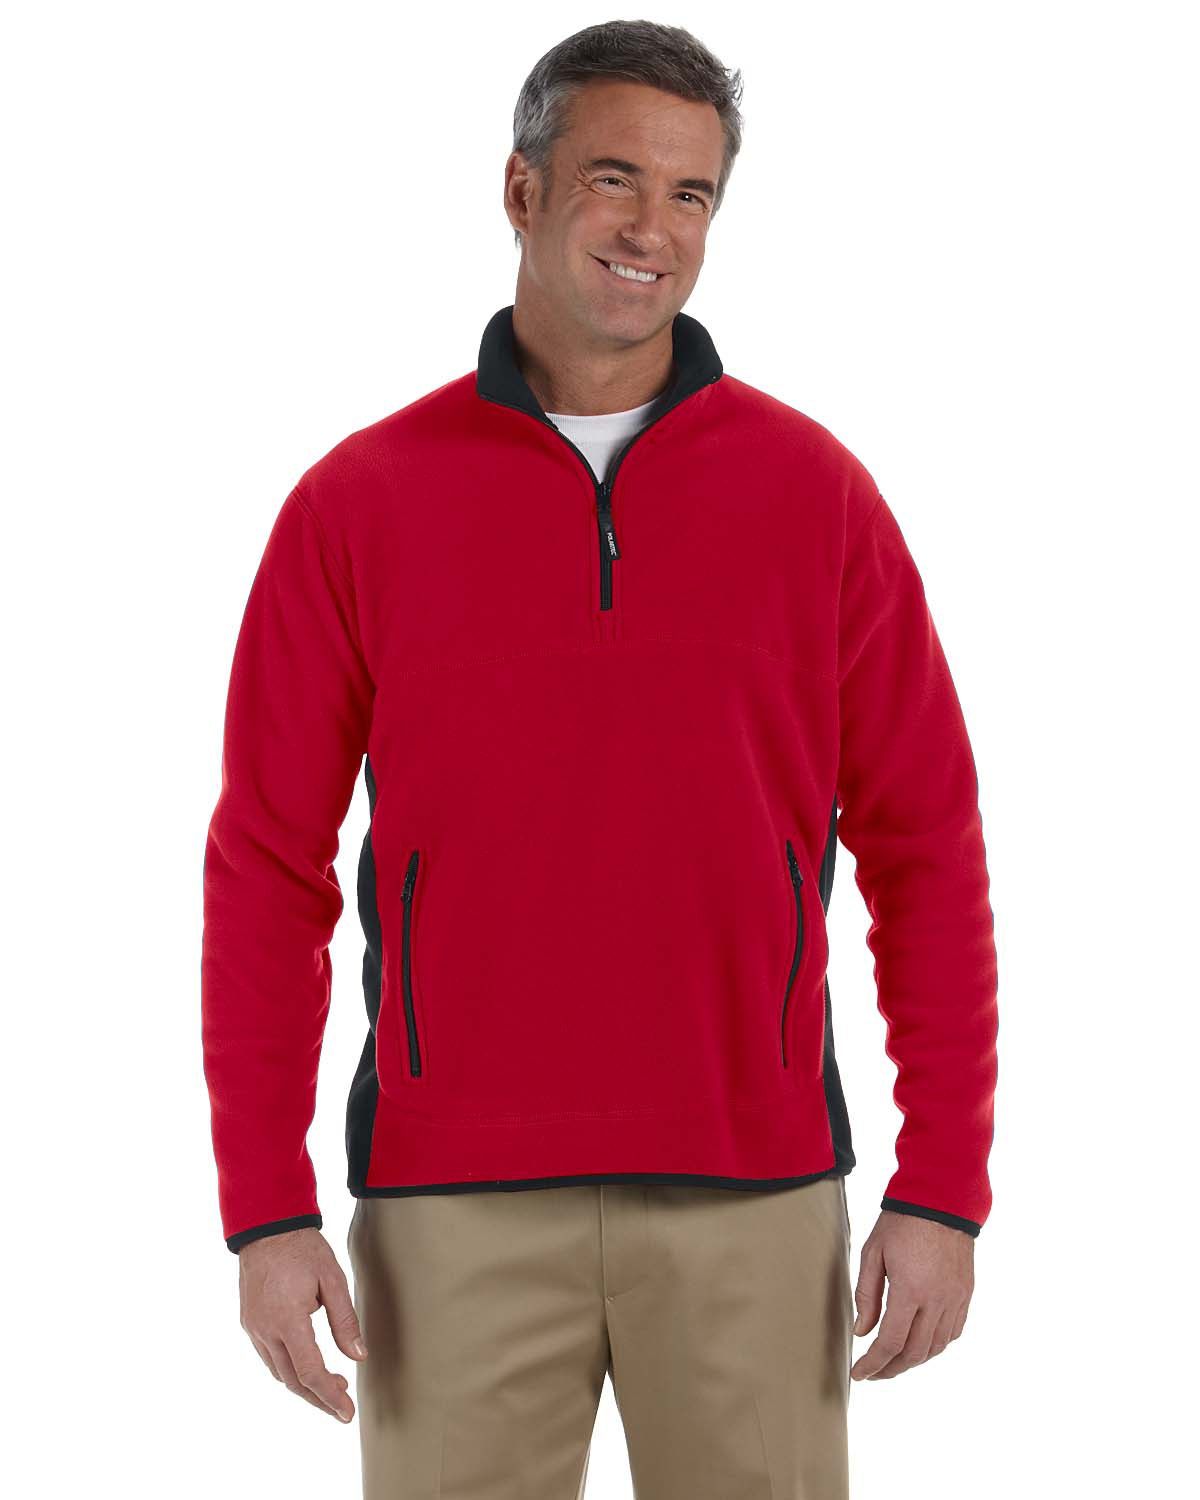 Men's Quarter Zip Pullover Fleece with Pockets